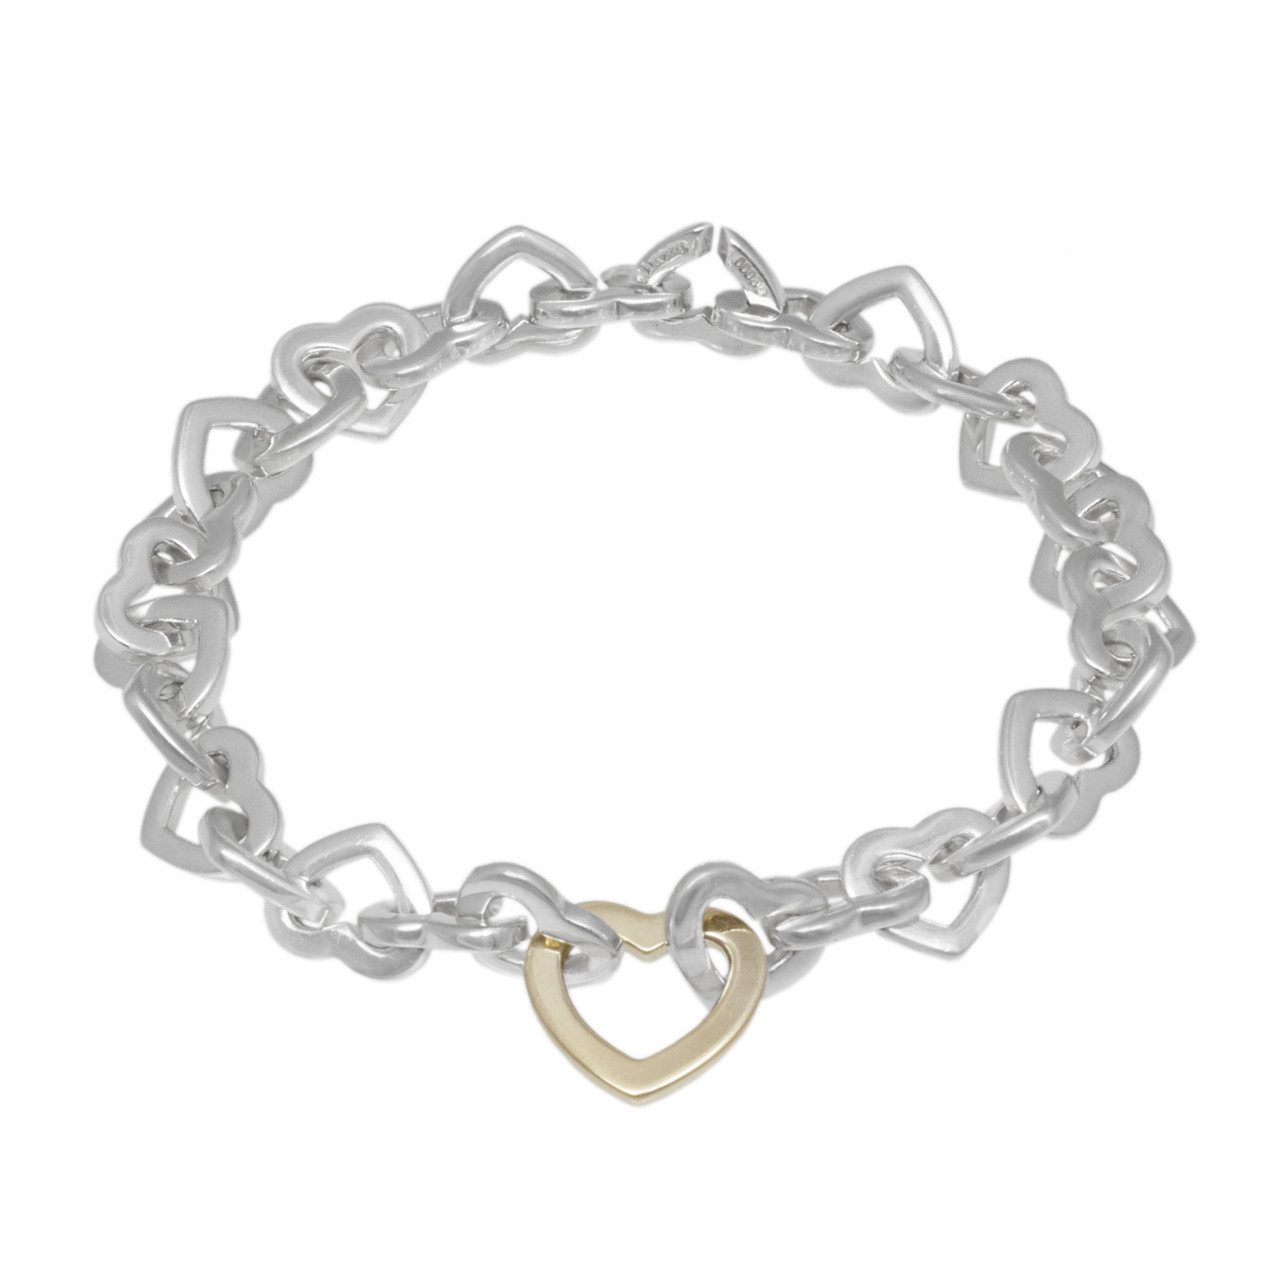 ab5a4e25b53203 Tiffany & Co. Sterling Silver & 18K Yellow Gold Heart Link Bracelet ...